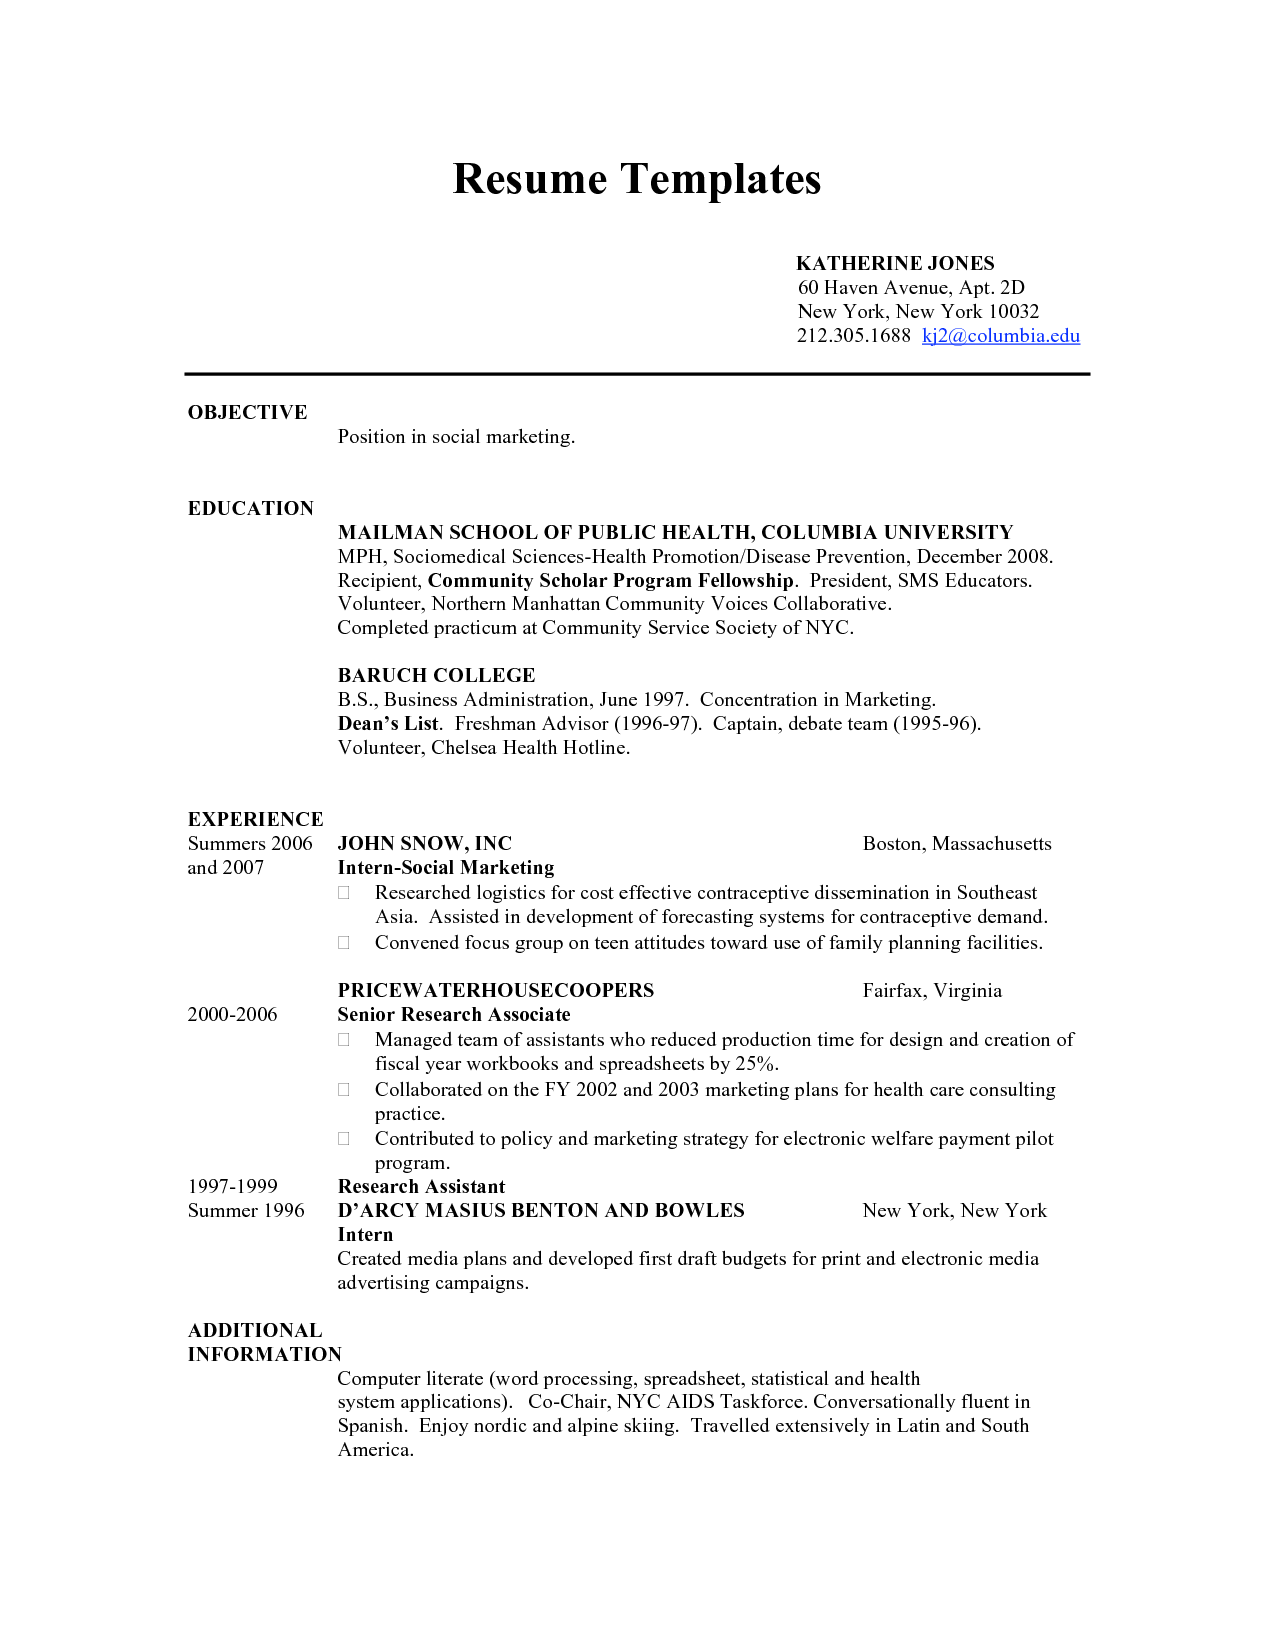 Resume Examples For 19 Year Old